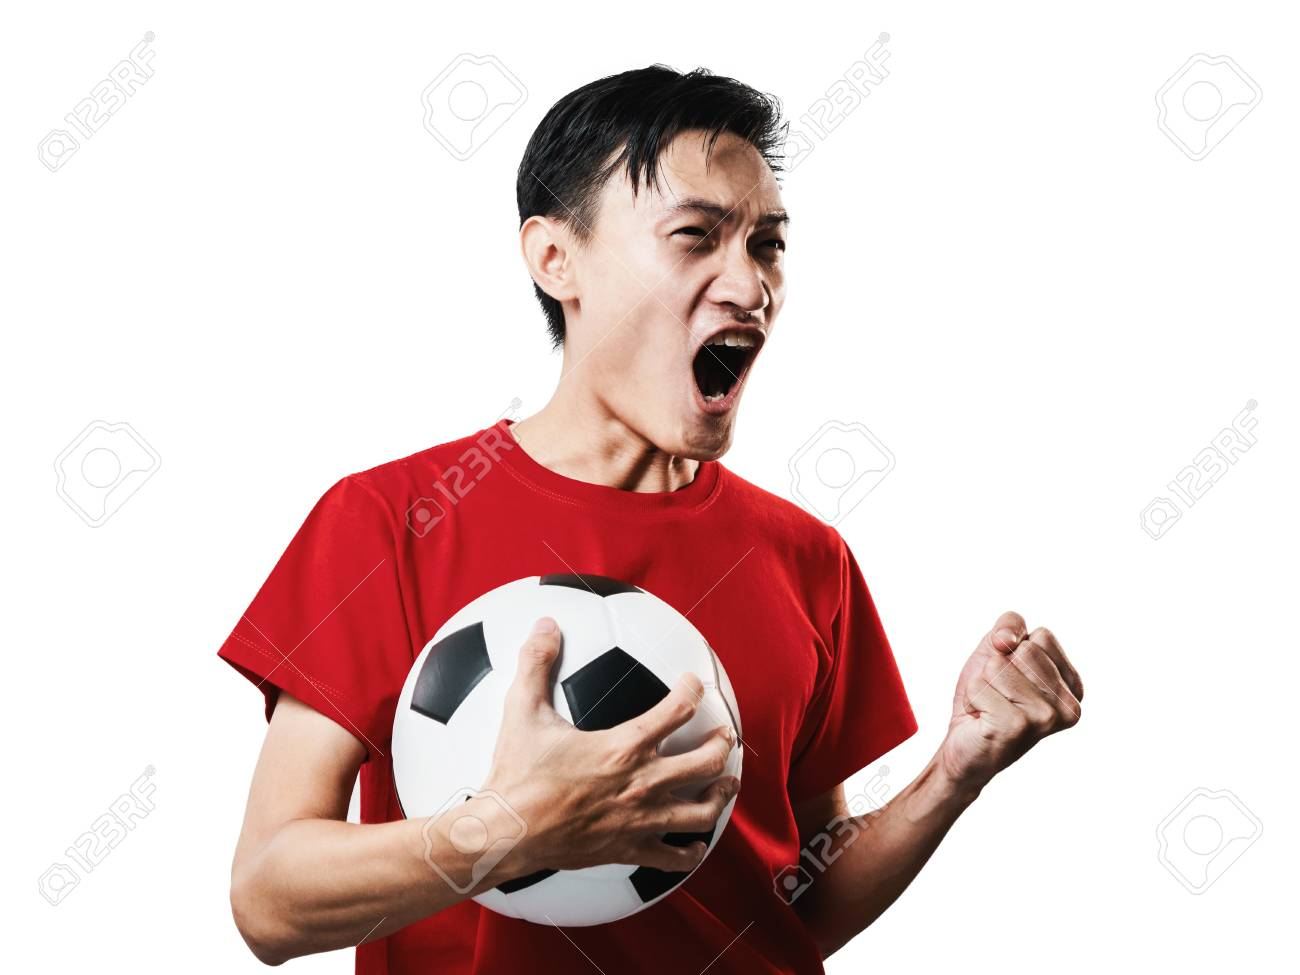 Asian Thai people soccer fan football in red sleeve shirt isolated on white background high contrast. - 103967924